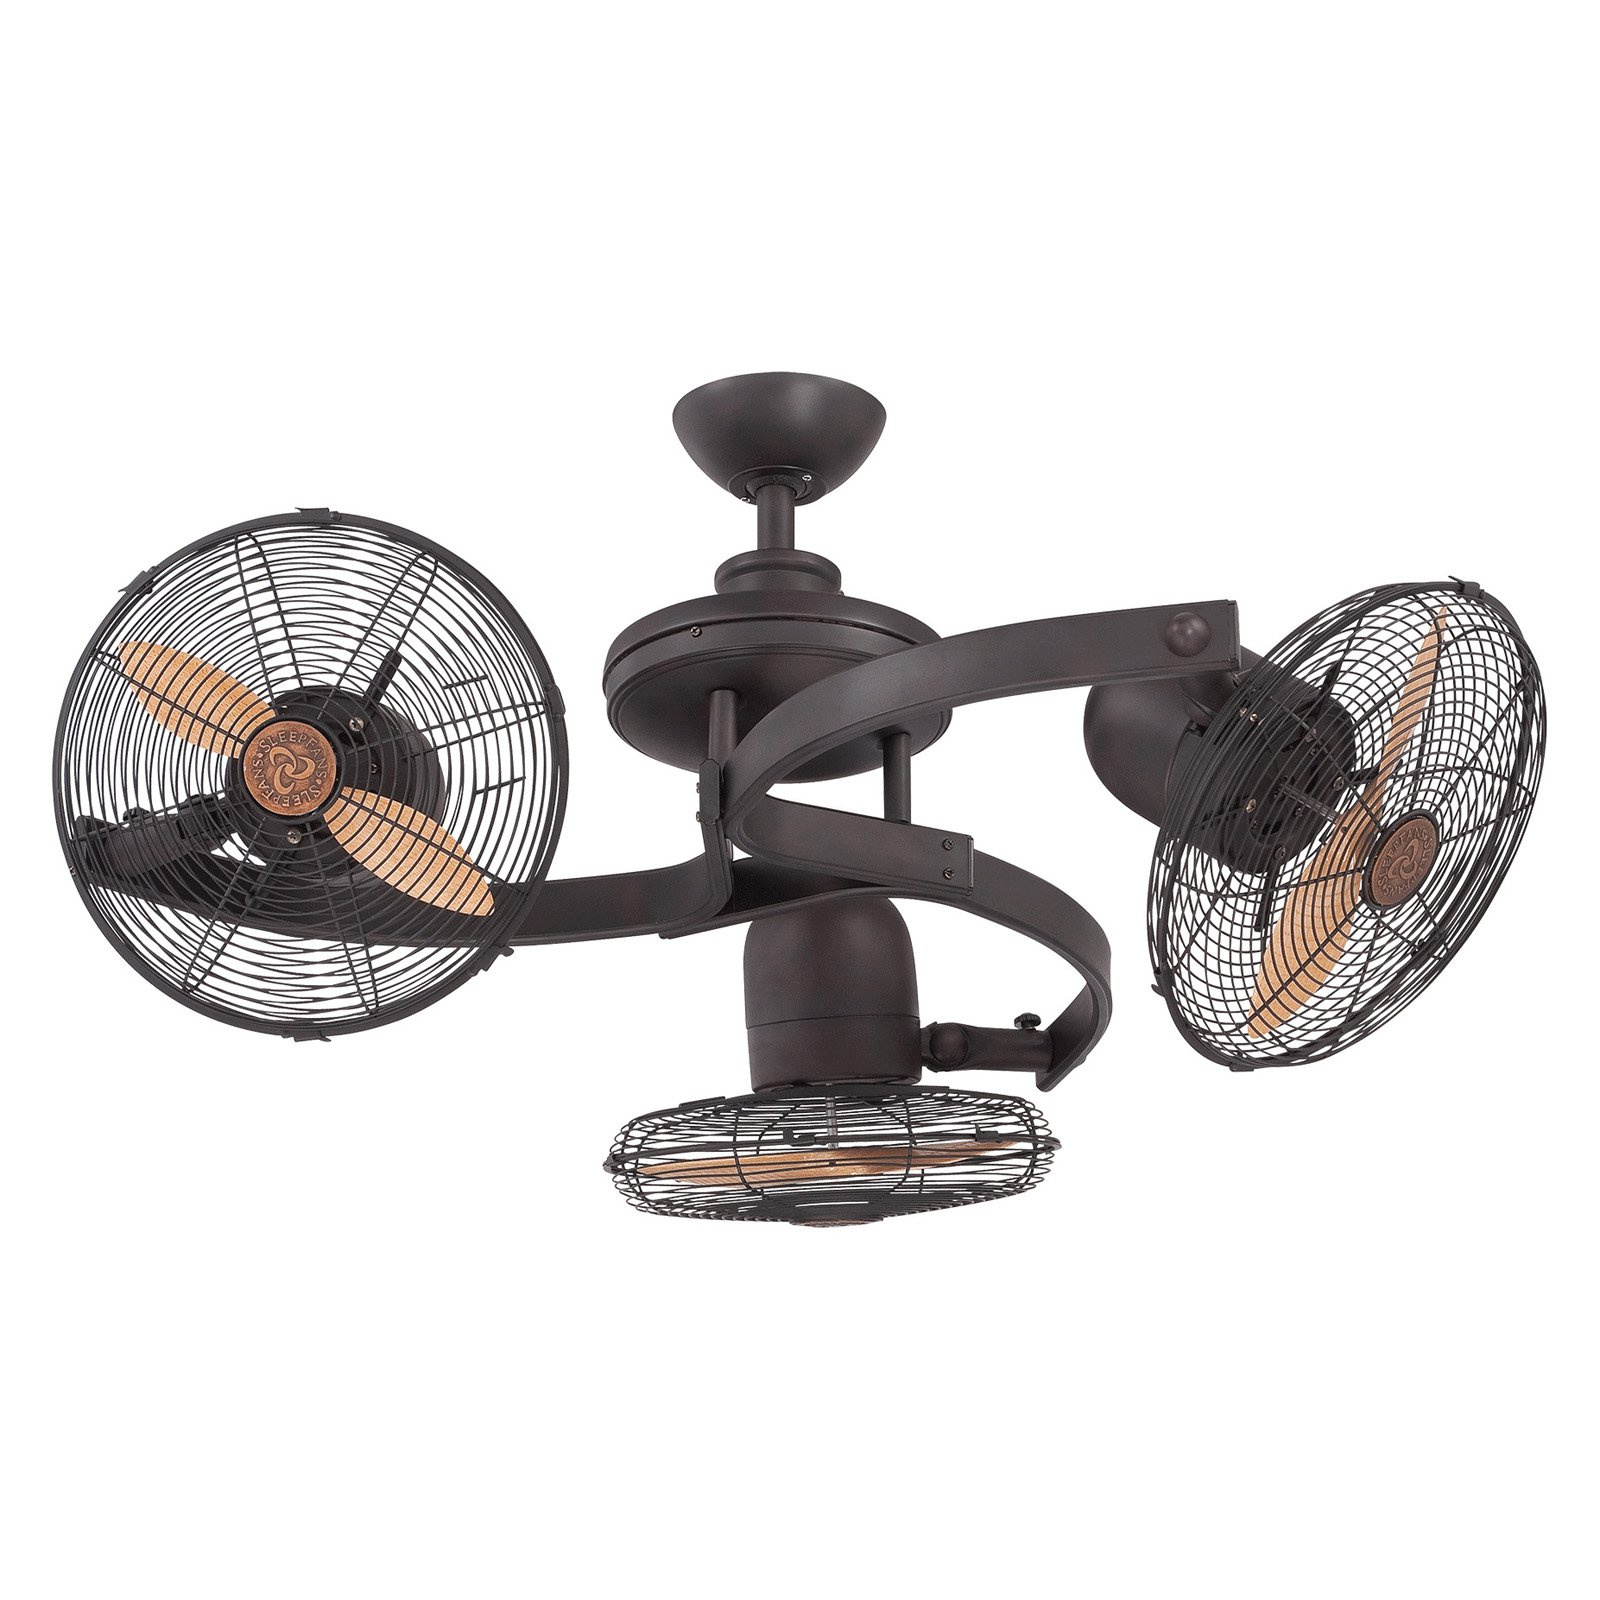 Savoy House Circulaire 38-951-CA-13 3-Headed Ceiling Fan